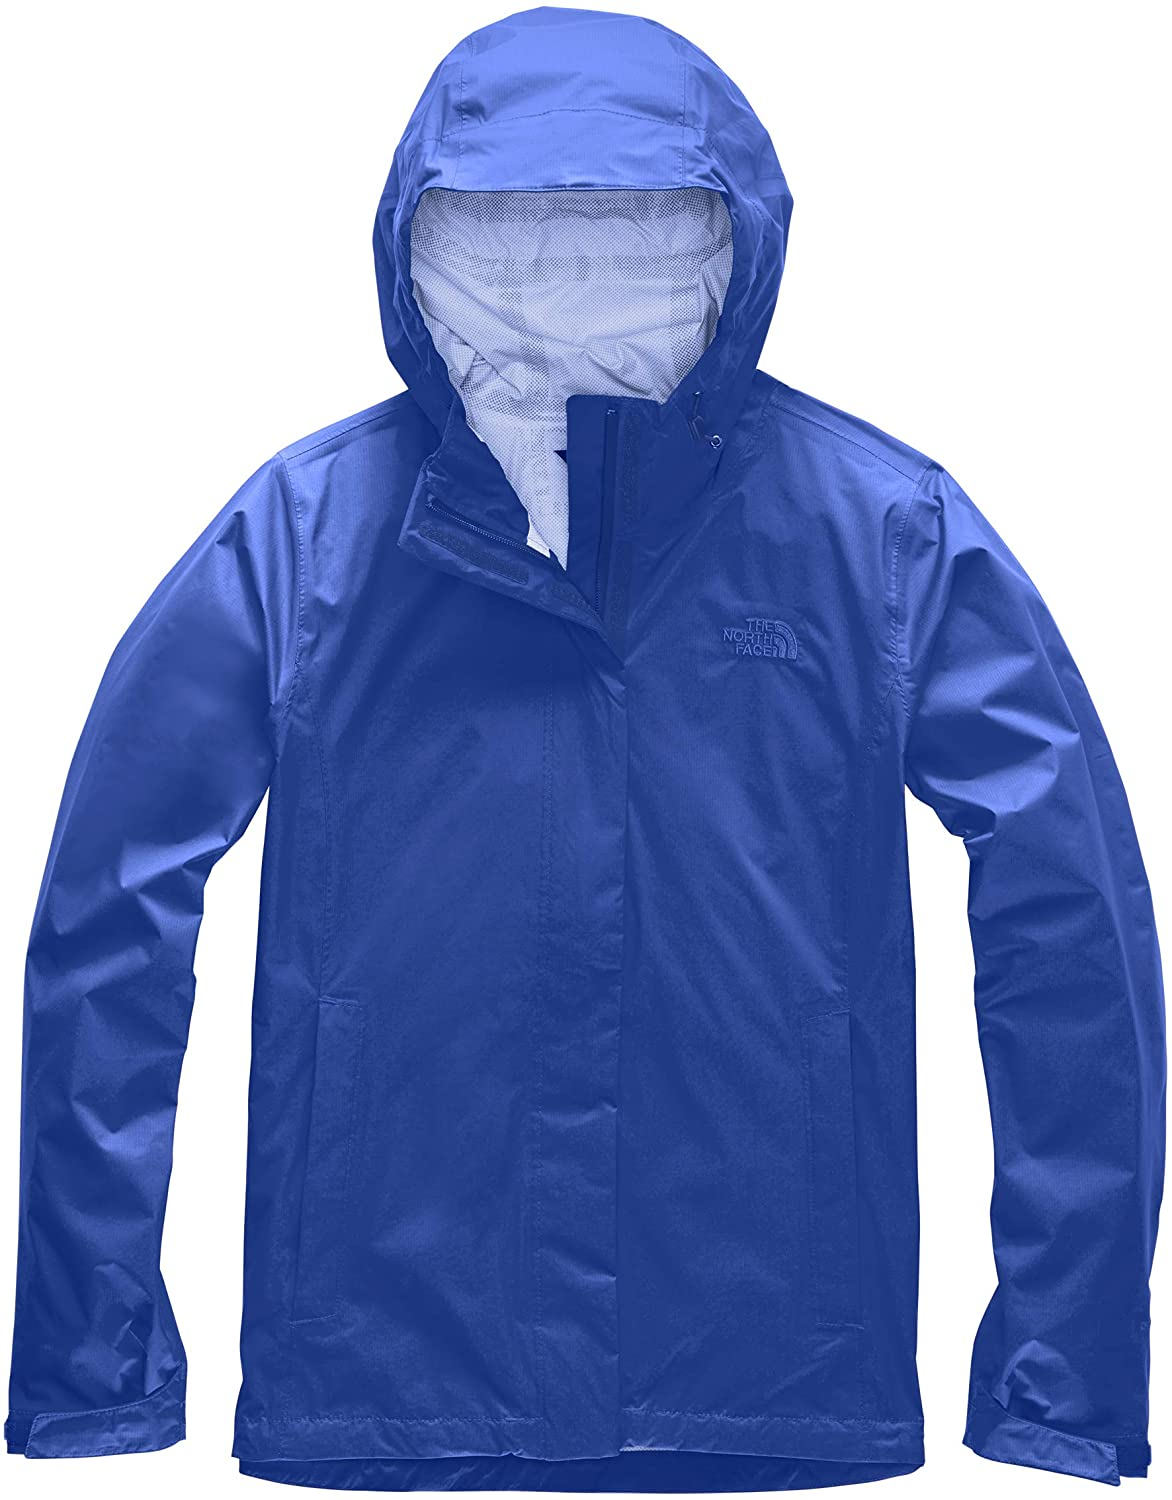 Womens The North Face Venture 2 Jacket Tnf Blue